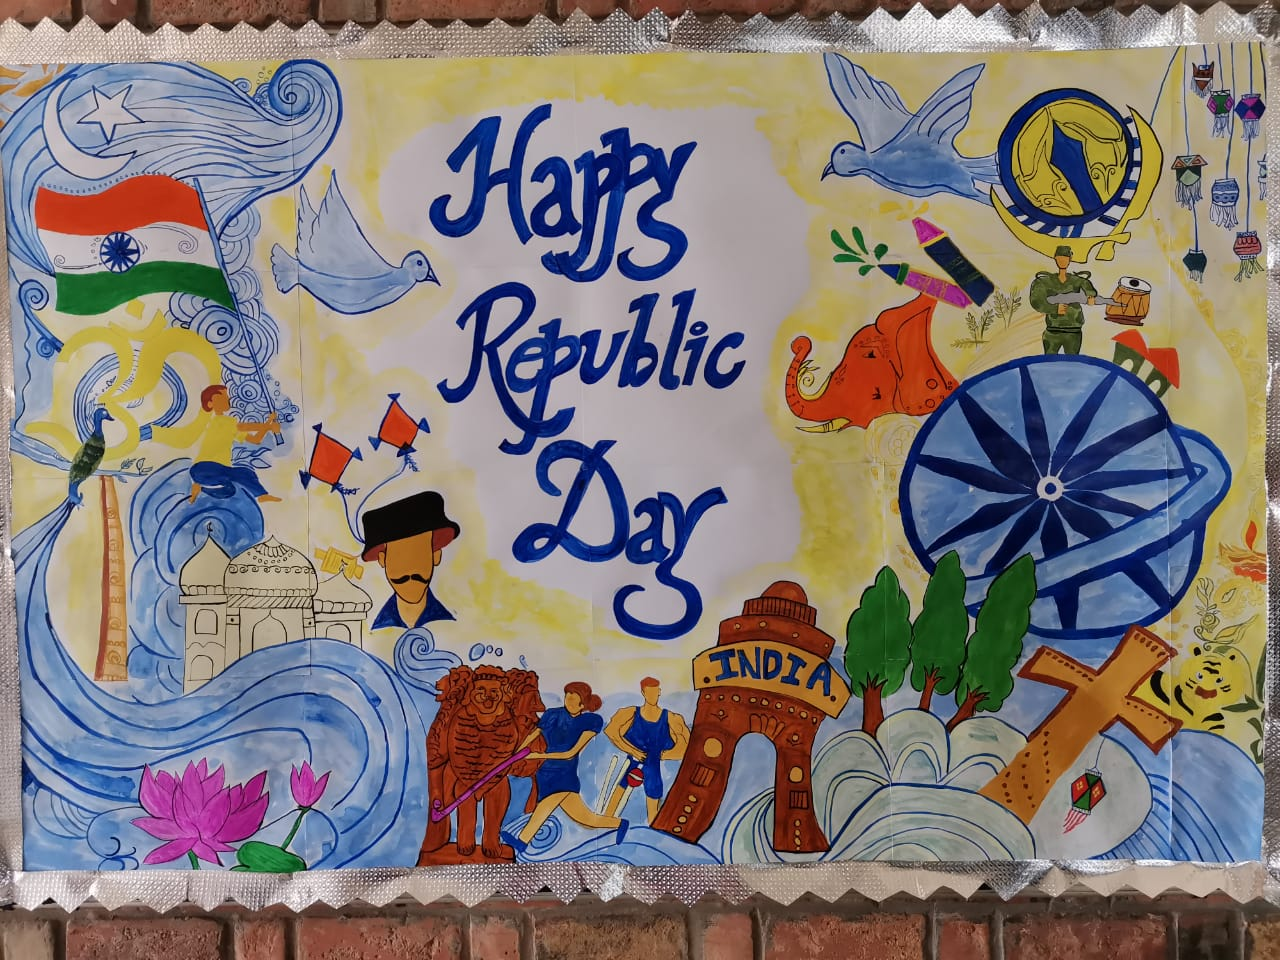 Celebration of Republic Day on 25 and 26 Jan, 2020